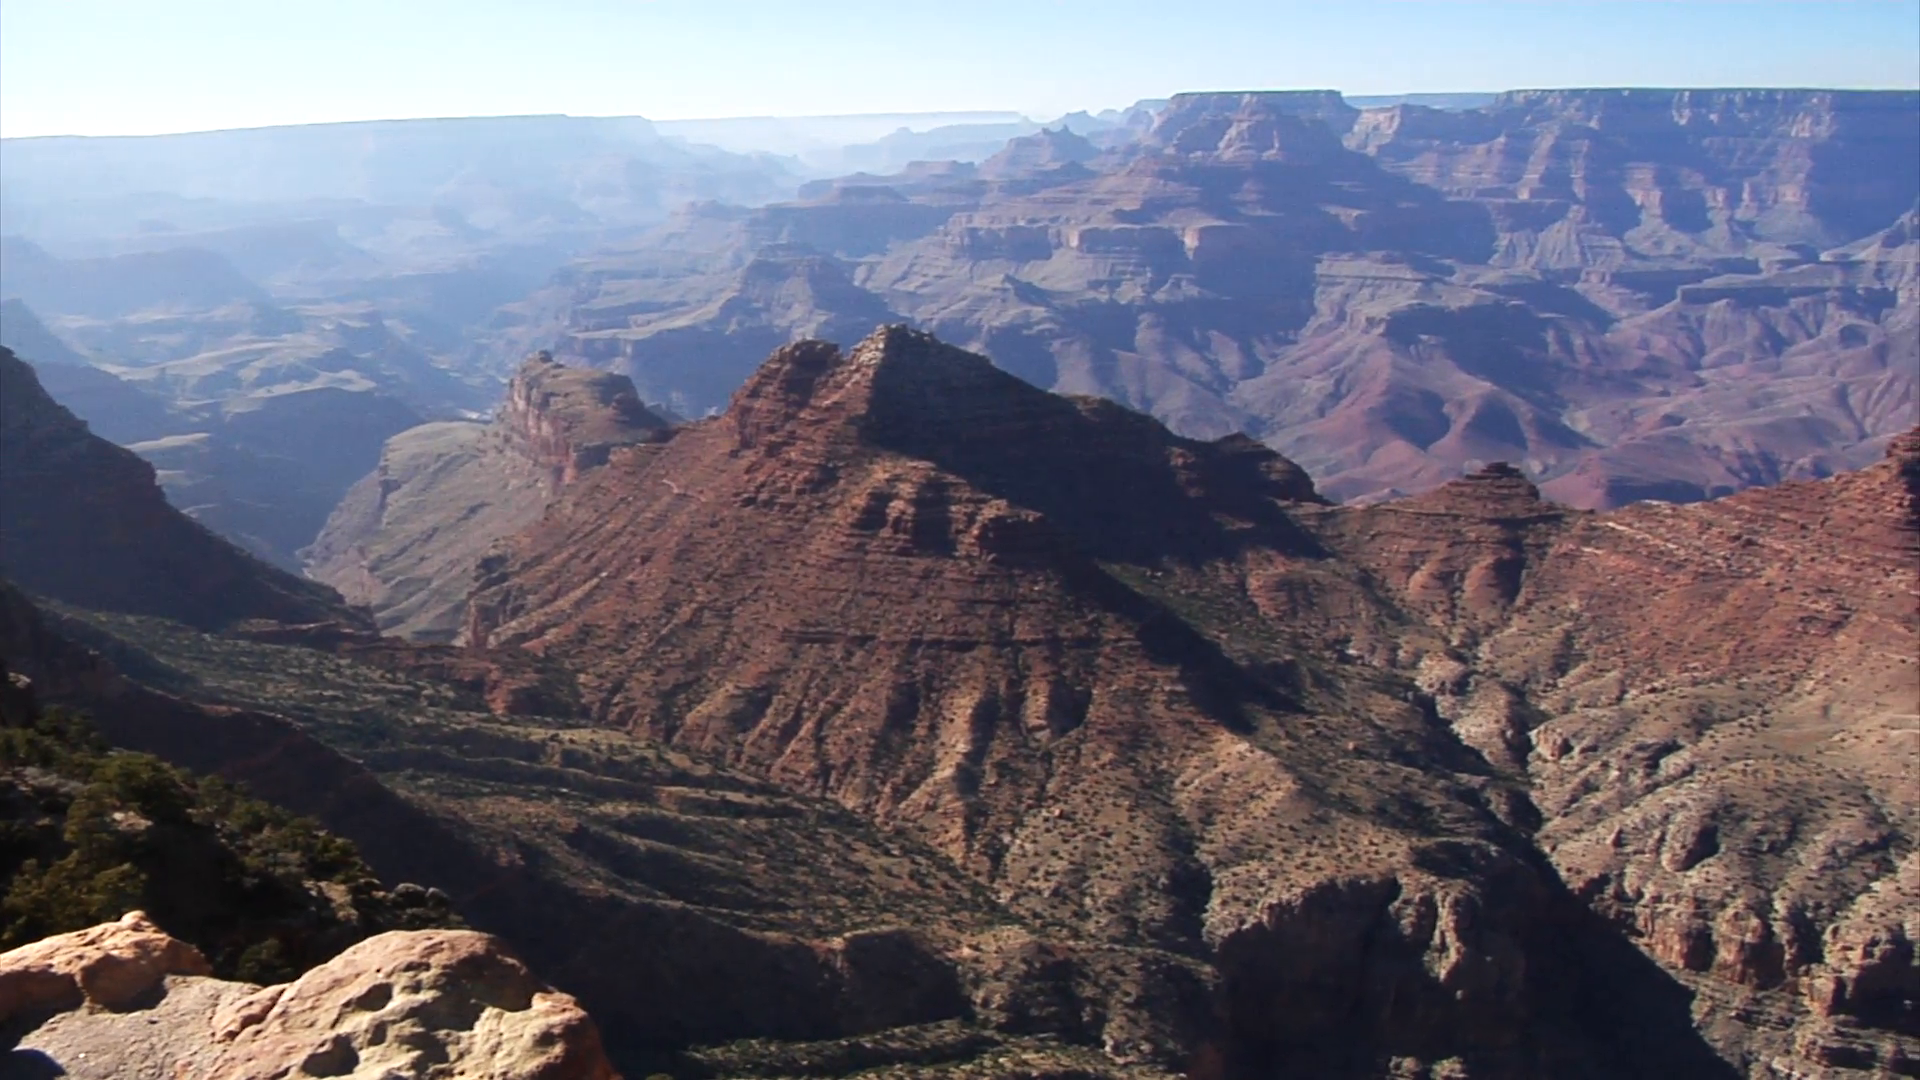 Pan of Grand Canyon National Park. Beauty shot. 1080p HD. Stock Video  Footage - VideoBlocks - Grand Canyon PNG HD